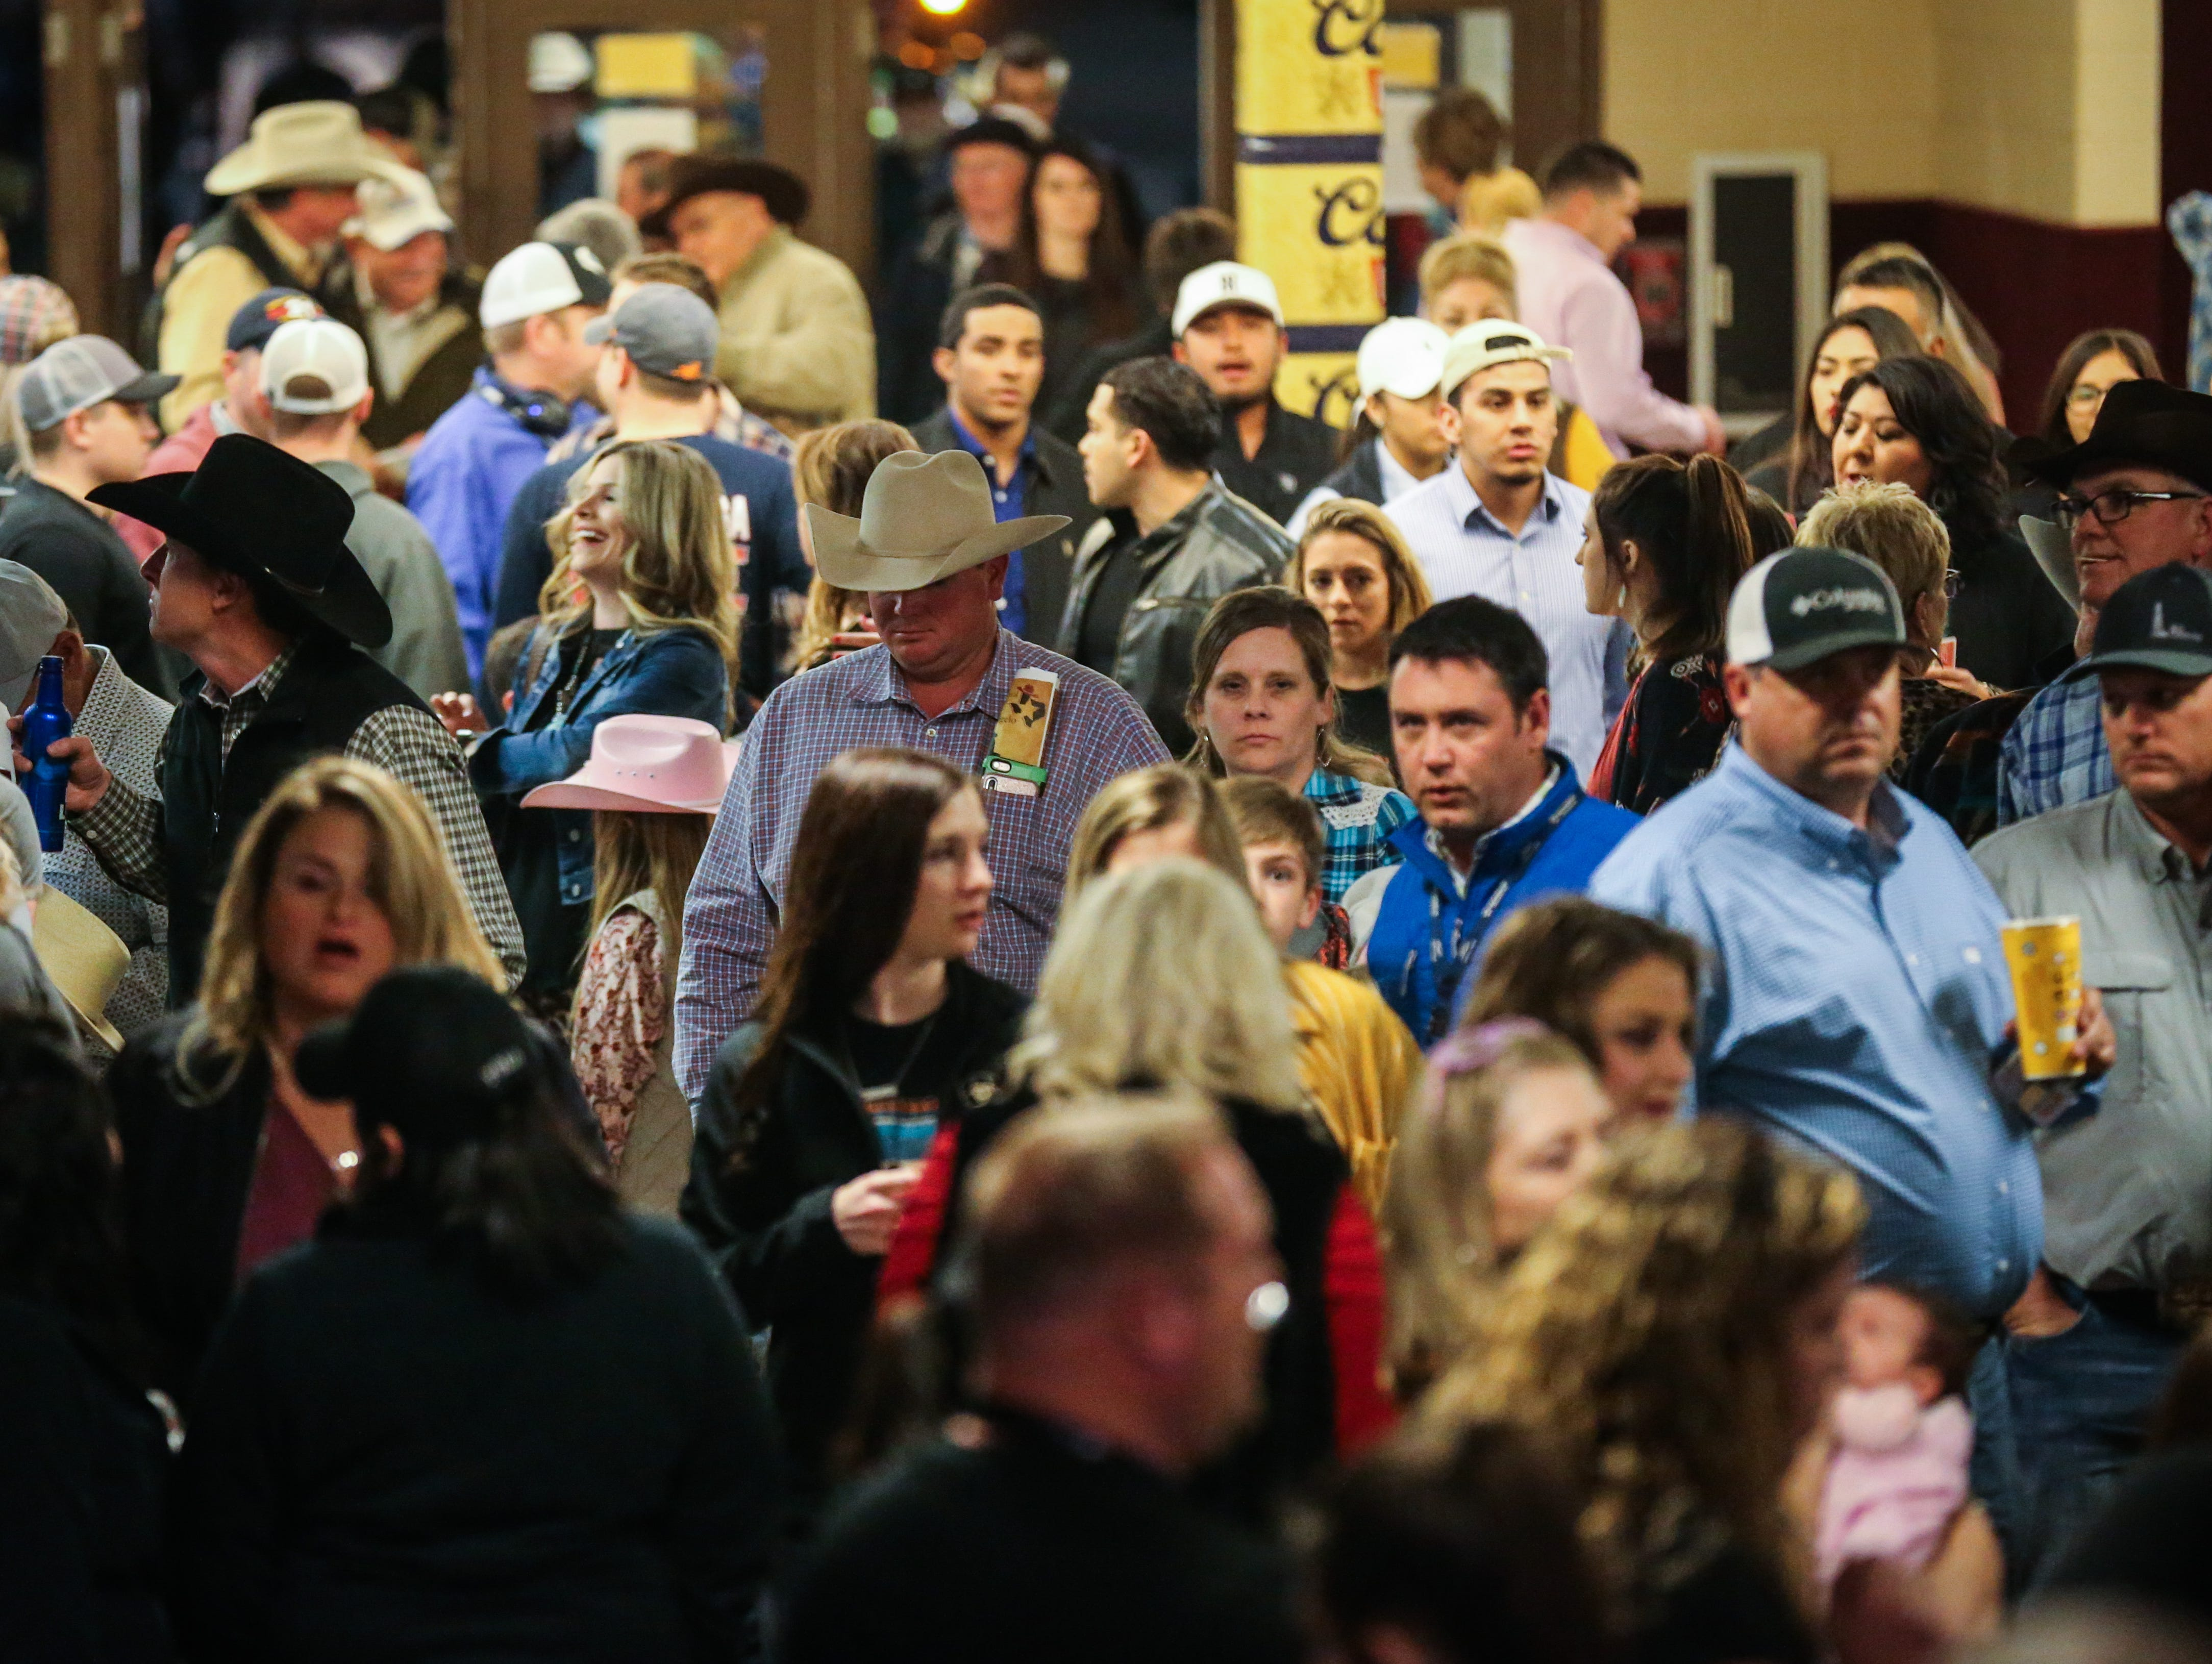 The crowd piles into the arena for the 1st performance of the San Angelo Stock Show & Rodeo Friday, Feb. 1, 2019, at Foster Communications Coliseum.